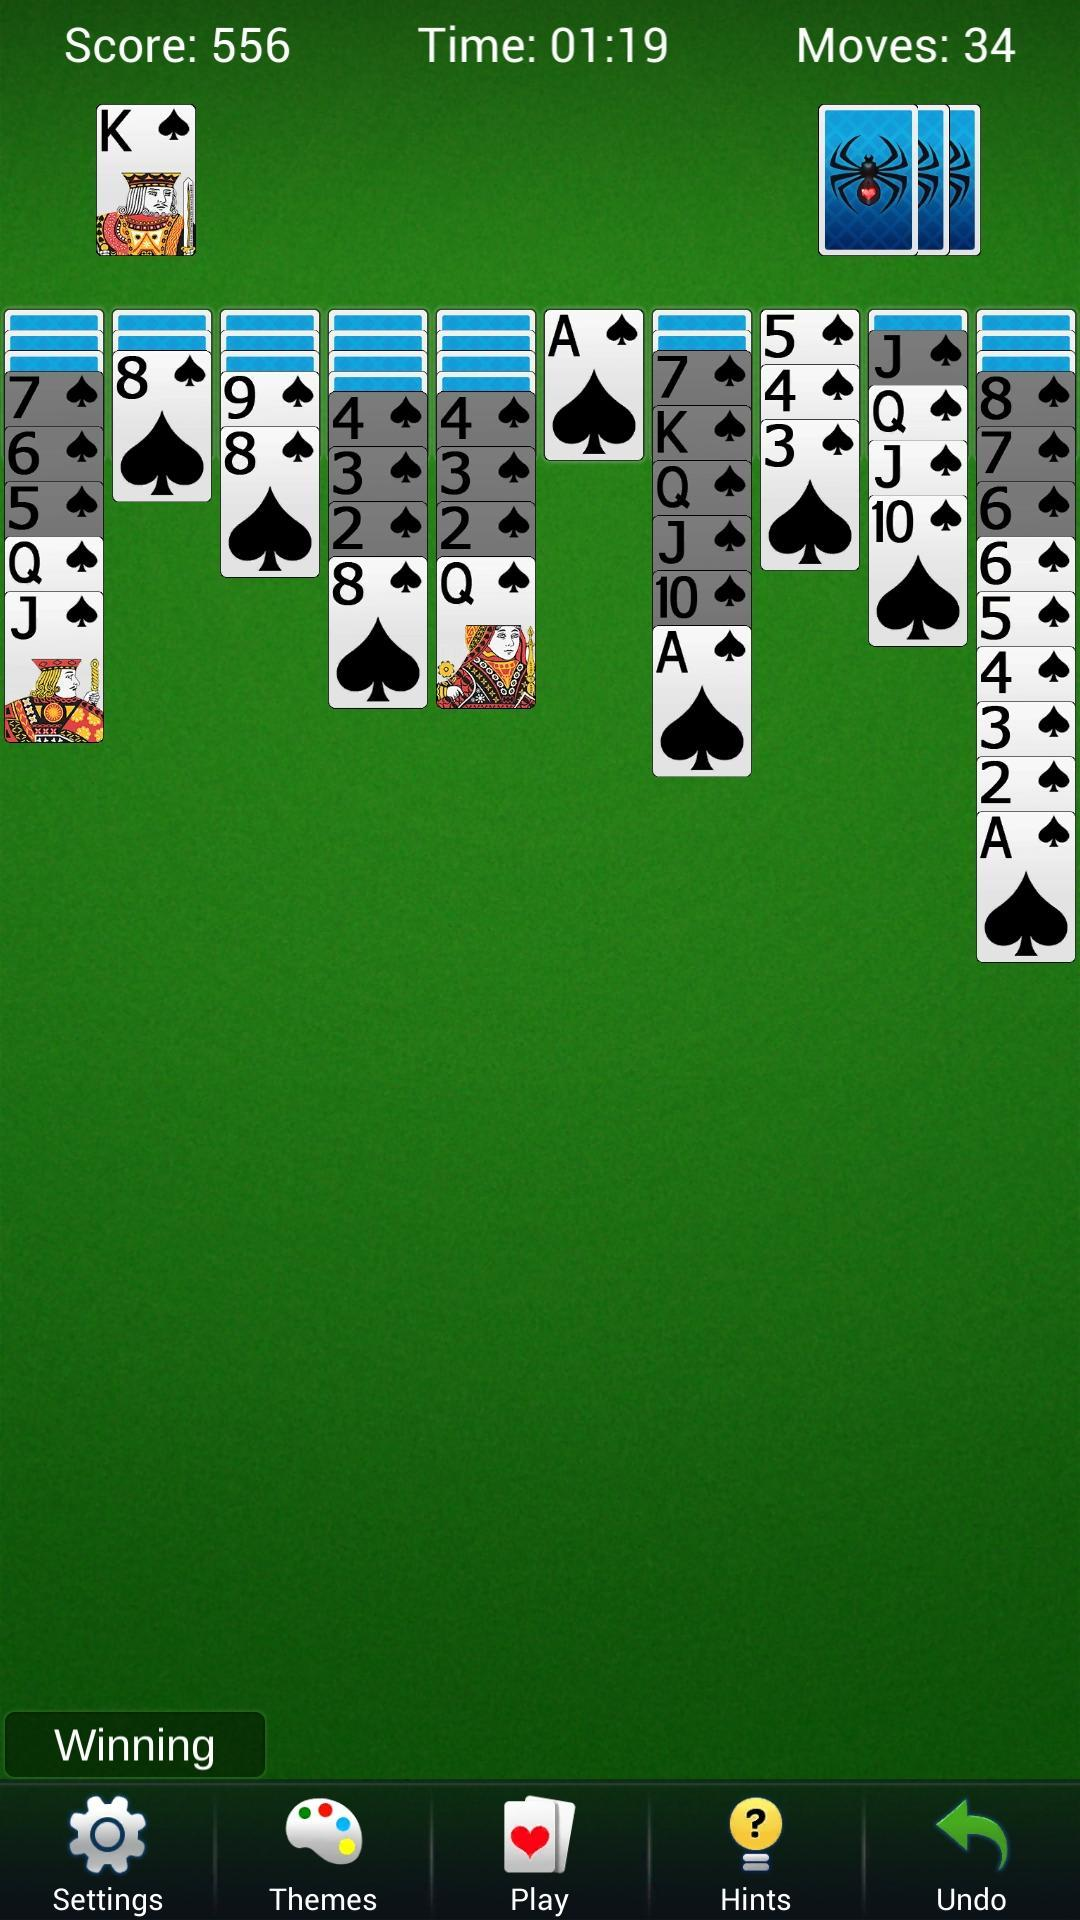 Spider Solitaire - Best Classic Card Games 1.8.0.20210225 Screenshot 1